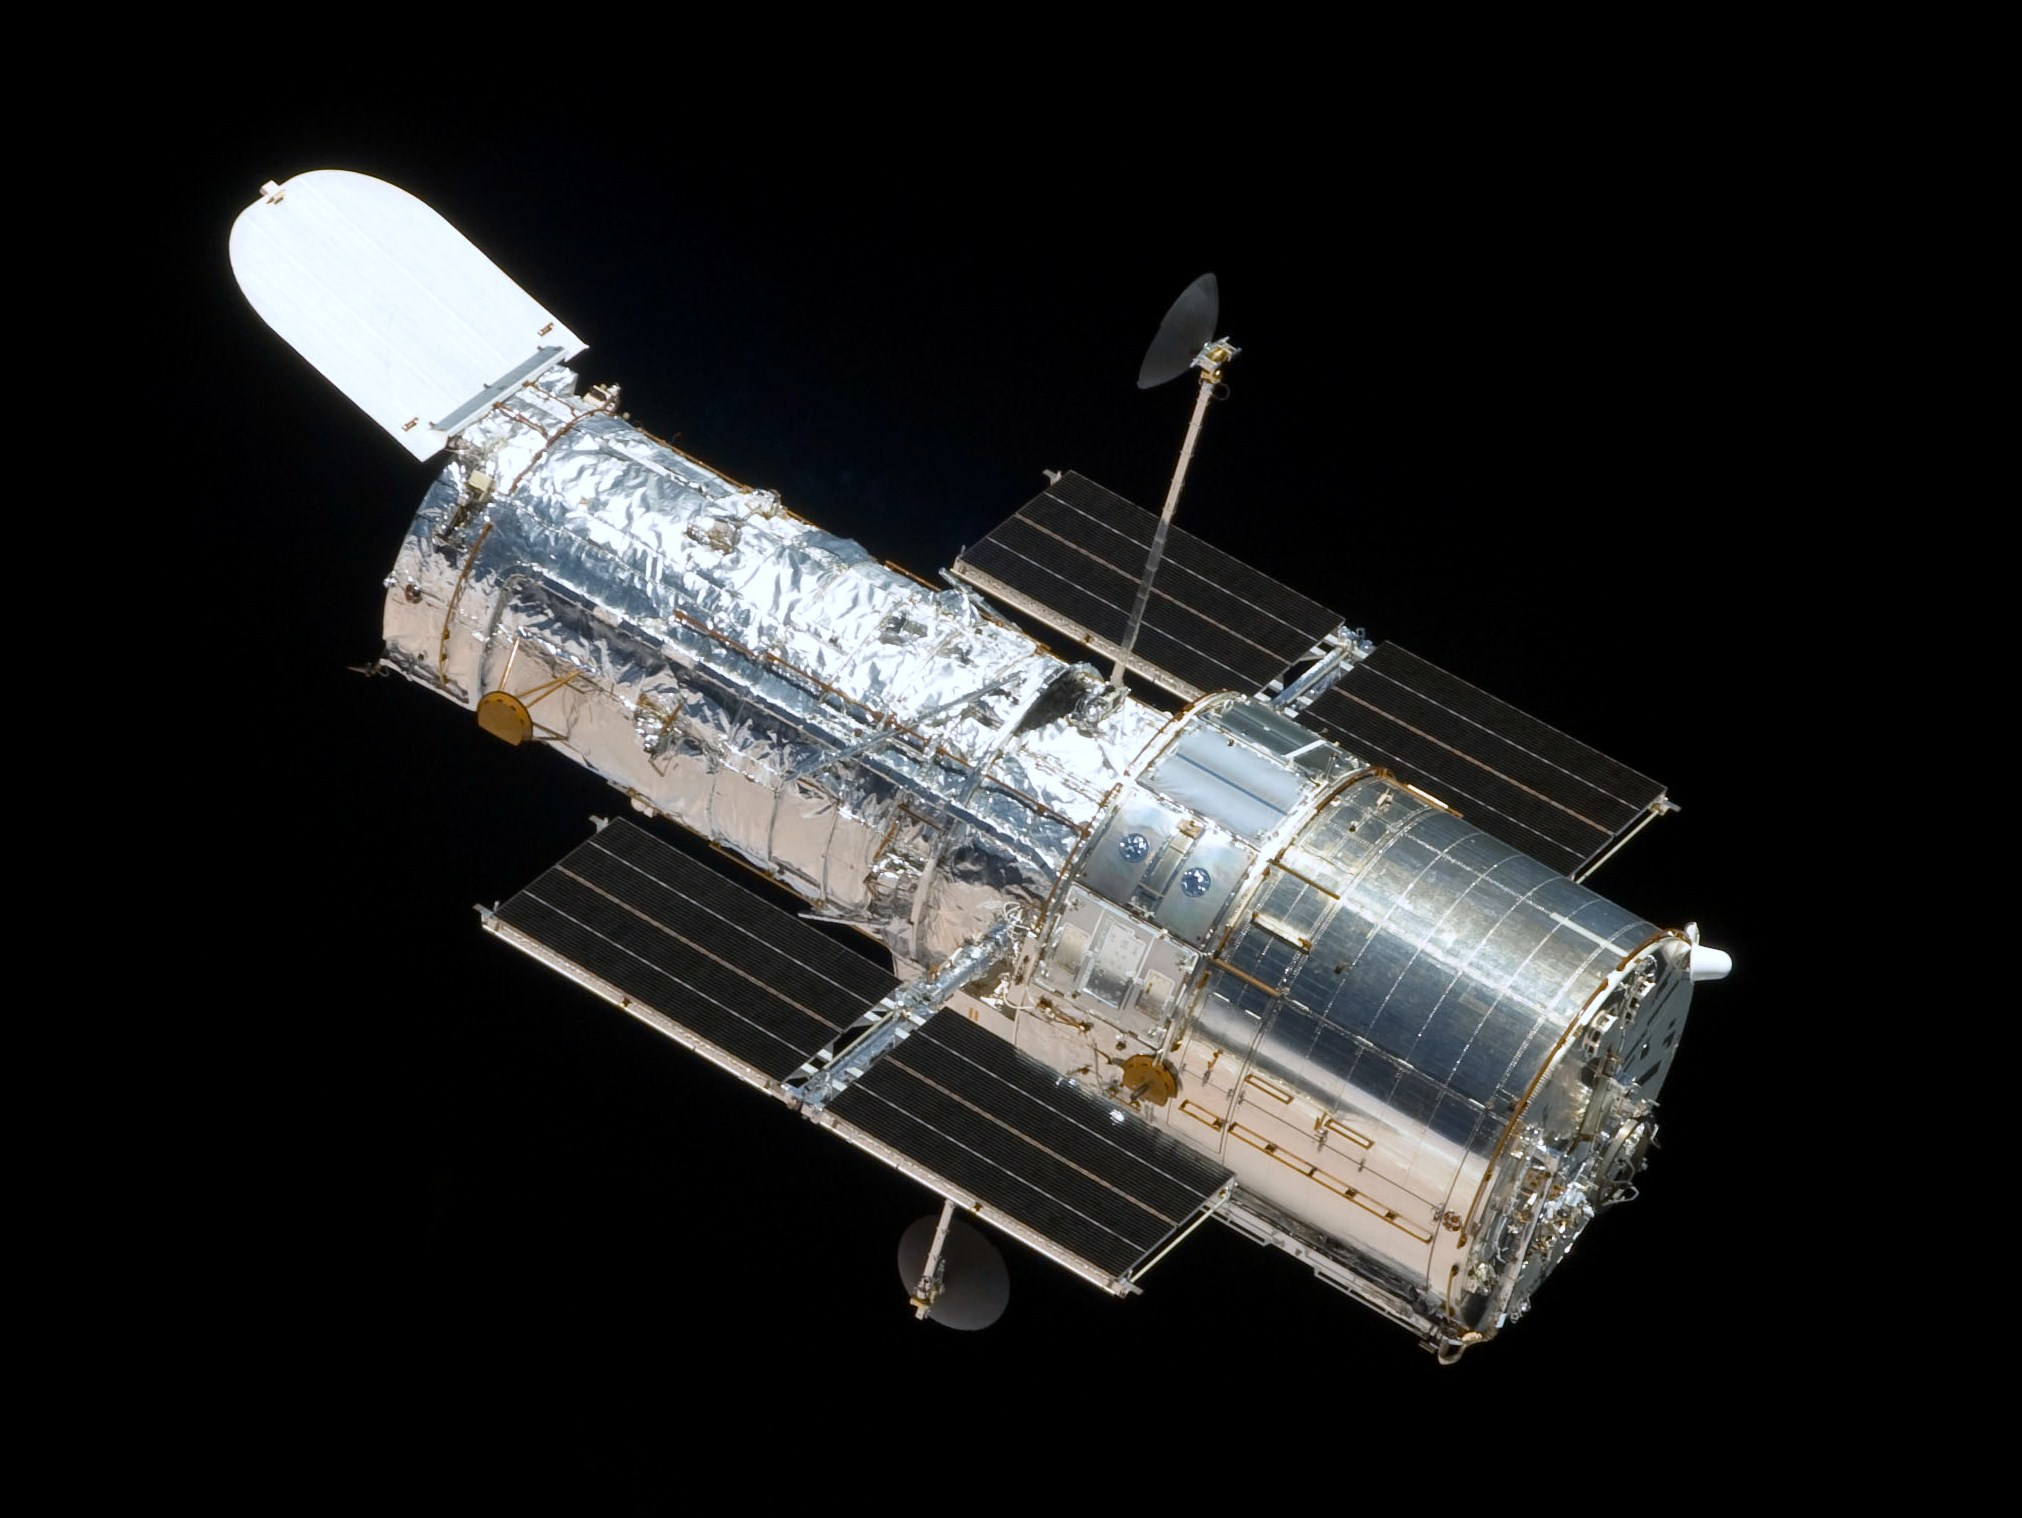 Missing dark matter & shadows from a black hole, Hubble continues to unlock cosmic mysteries - NASASpaceflight.com